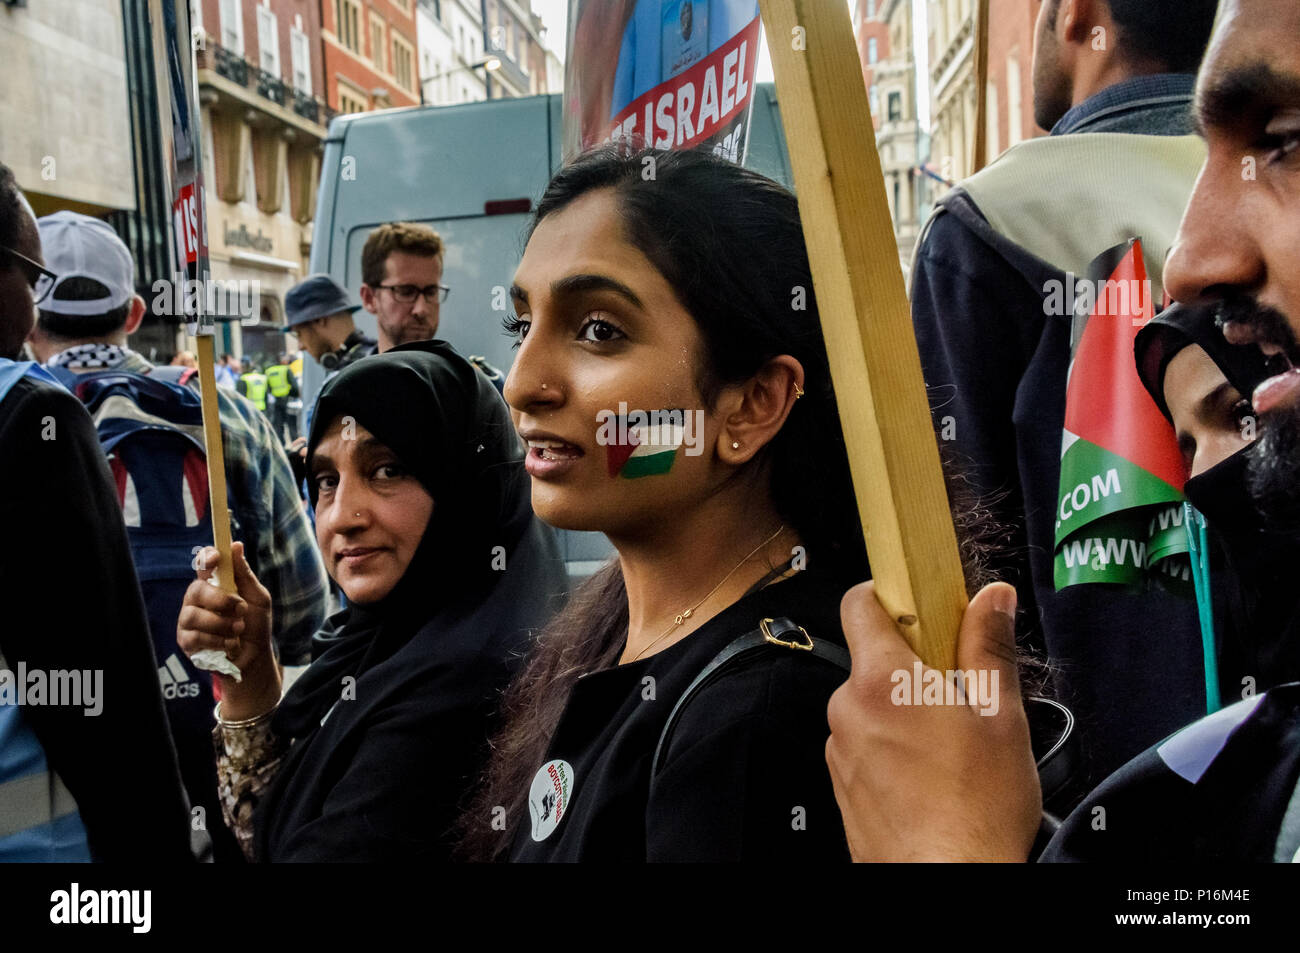 June 10, 2018 - London, UK. 10th June 2018. A large crowd squashed into the street in front of the Saudi Arabian embassy for a rally in support of the oppressed people of Palestine and others around the world. The event, organised by the Justice for Palestine Committee, is supported by the Islamic Human Rights Commission and a wide range of pro-Palestinian organisations, and was opposed by the Zionist Federation and some right wing hooligans, who were stopped from attacking the peaceful event by a large police presence in the area. Celebrated in many countries, the day, established by the Isla - Stock Image